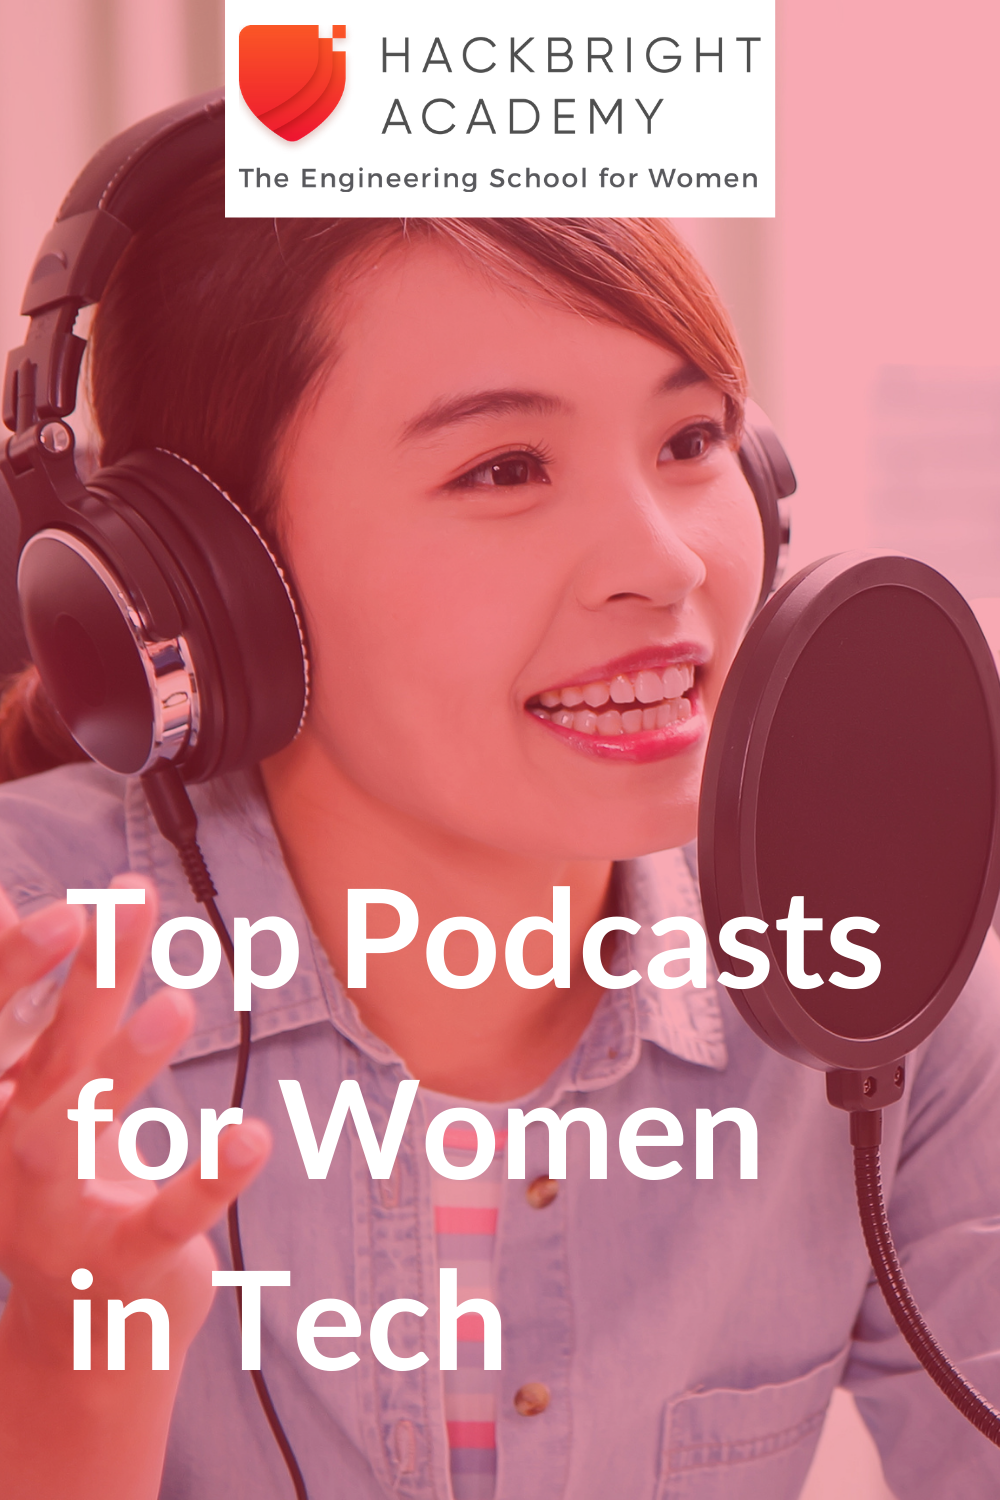 Top Podcasts for Women in Tech